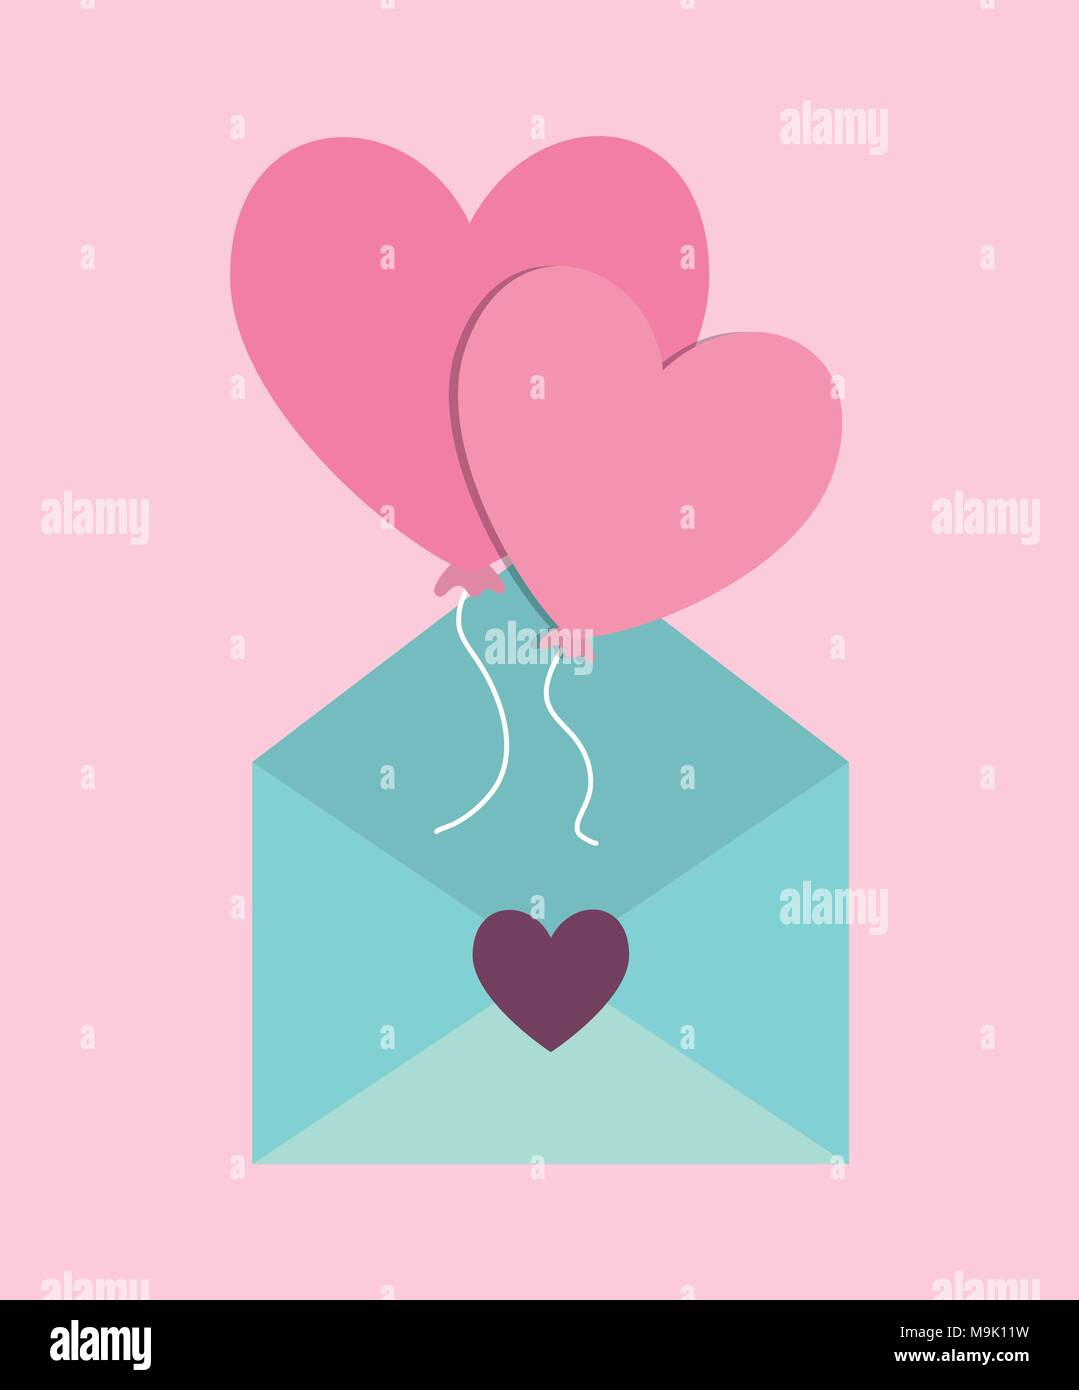 love letter design with envelope and balloons icon over pink background colorful design vector illustration